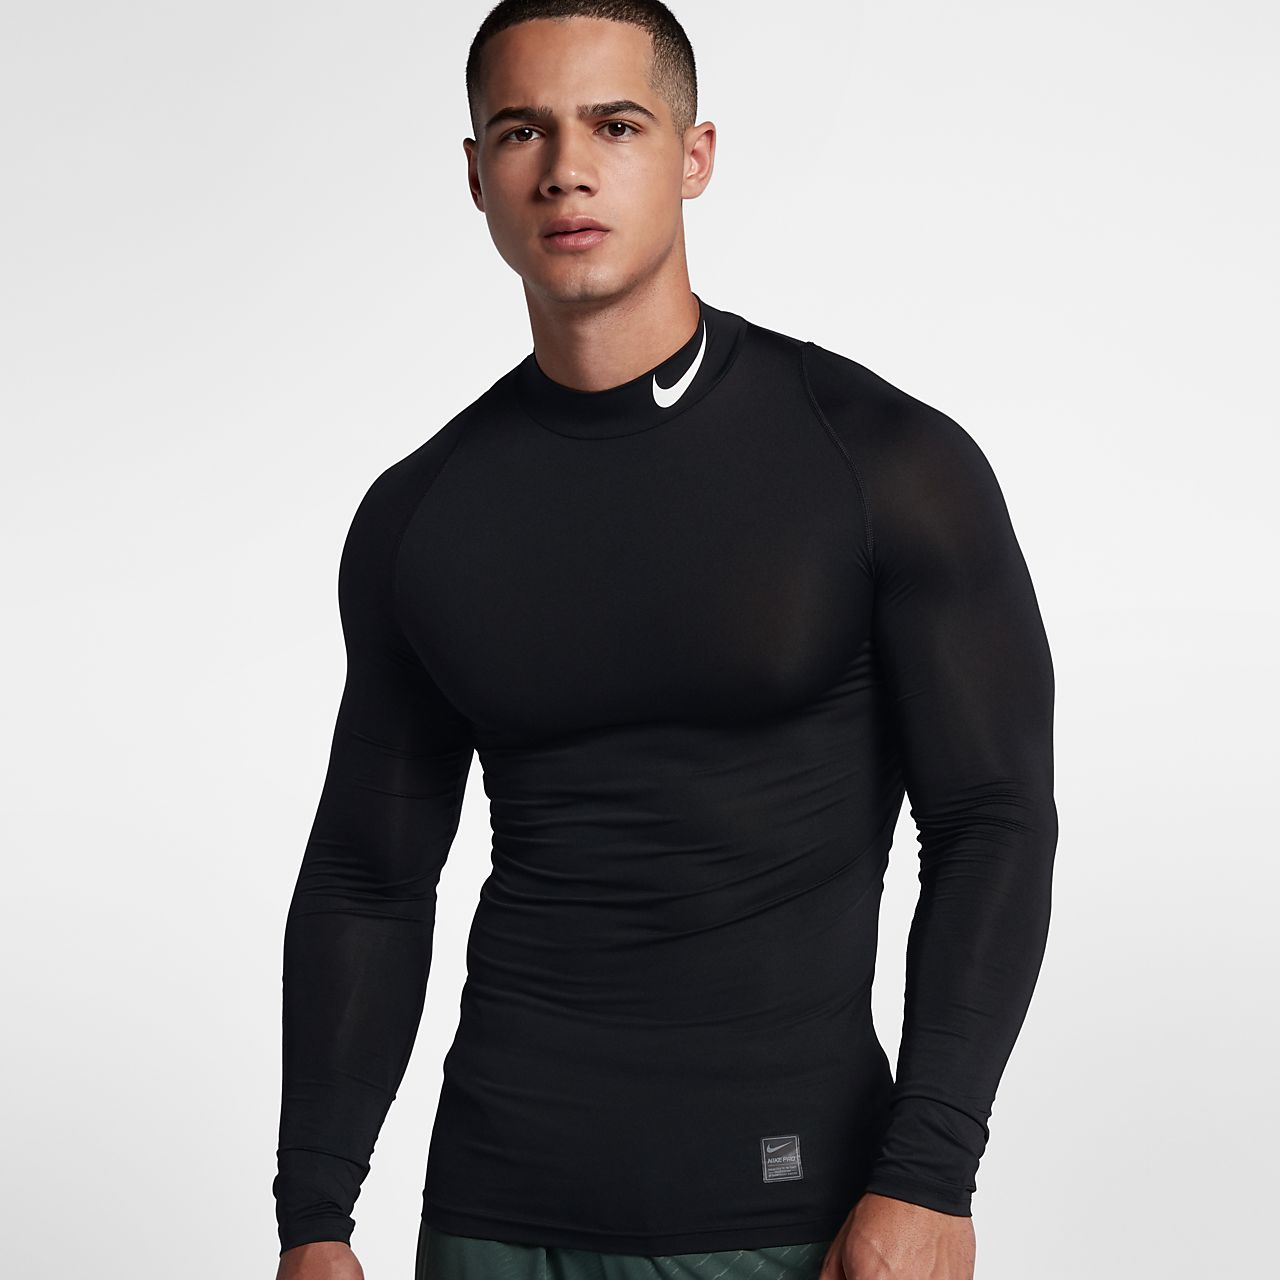 08157d54038352 Nike Pro Men s Long-Sleeve Training Top. Nike.com GB